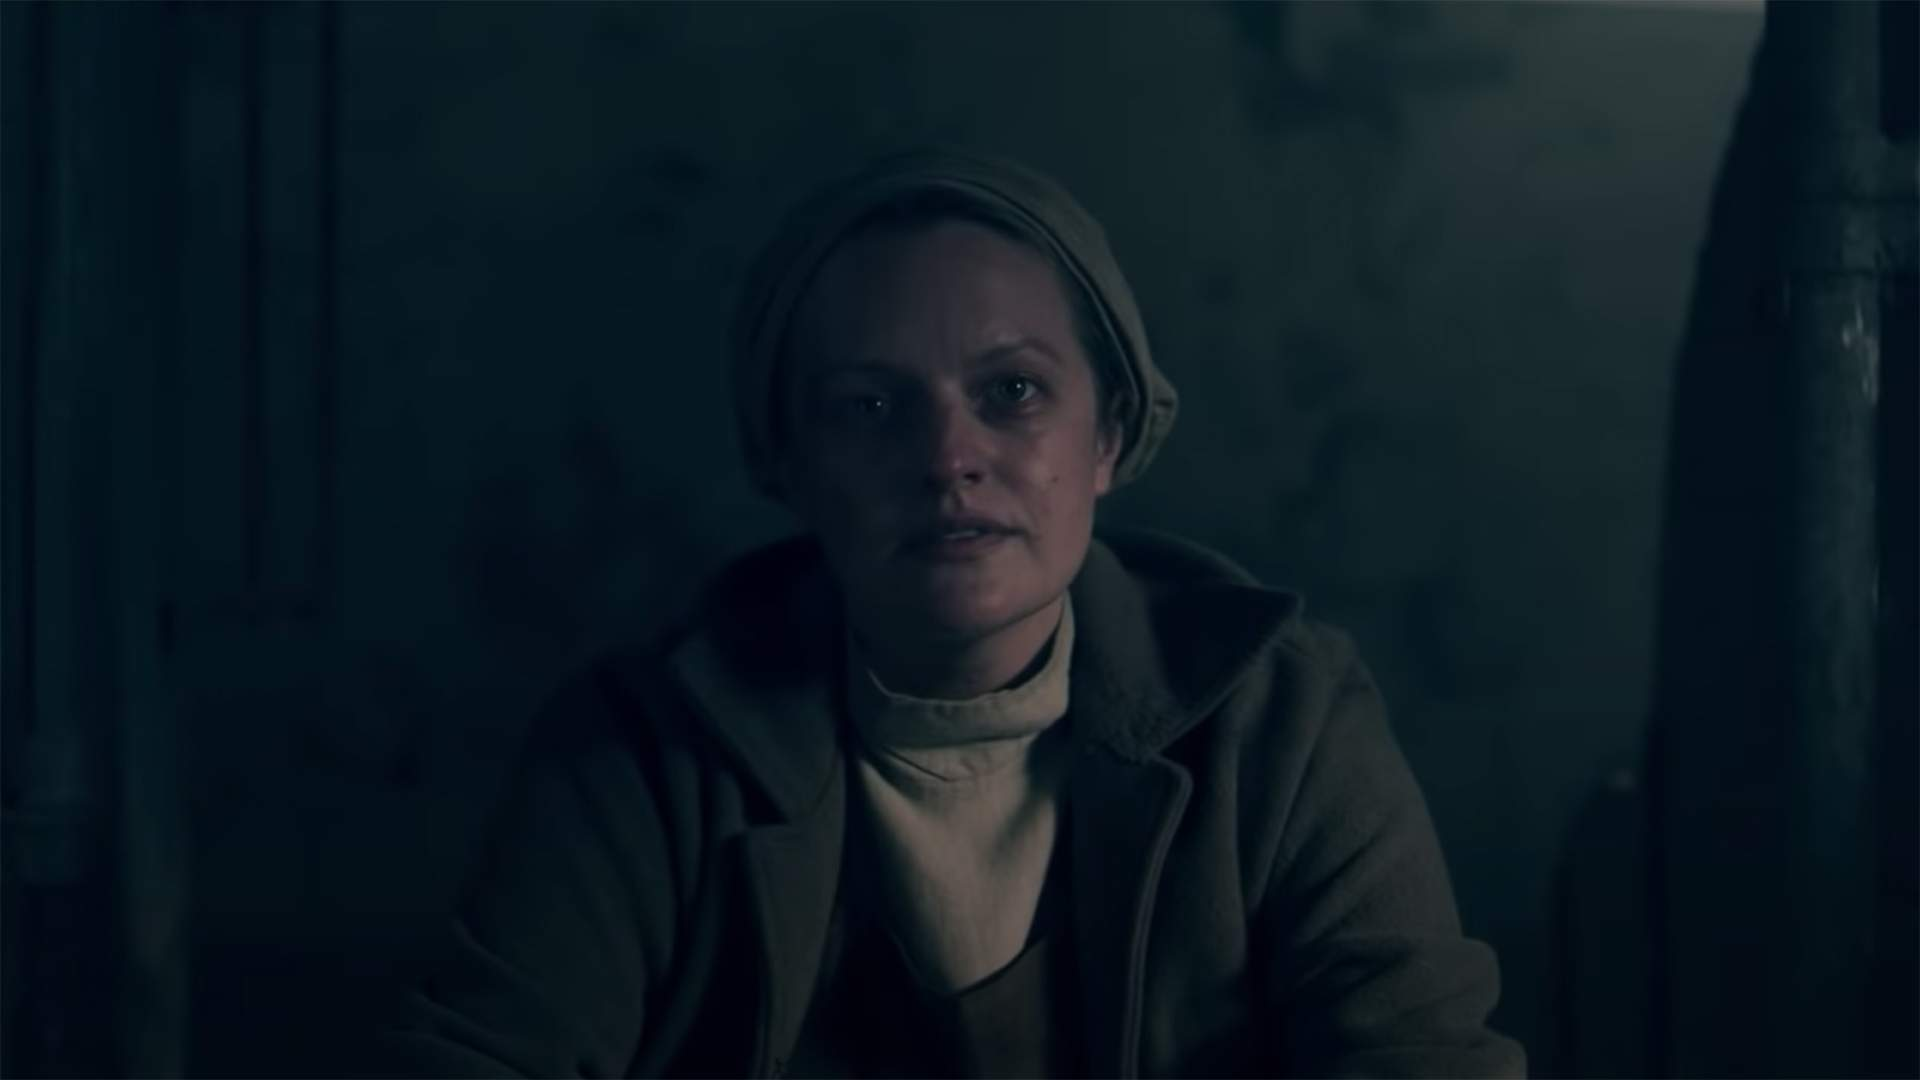 A New Trailer for 'The Handmaid's Tale' Is Here Ahead of the Fourth Season's Arrival Next Month